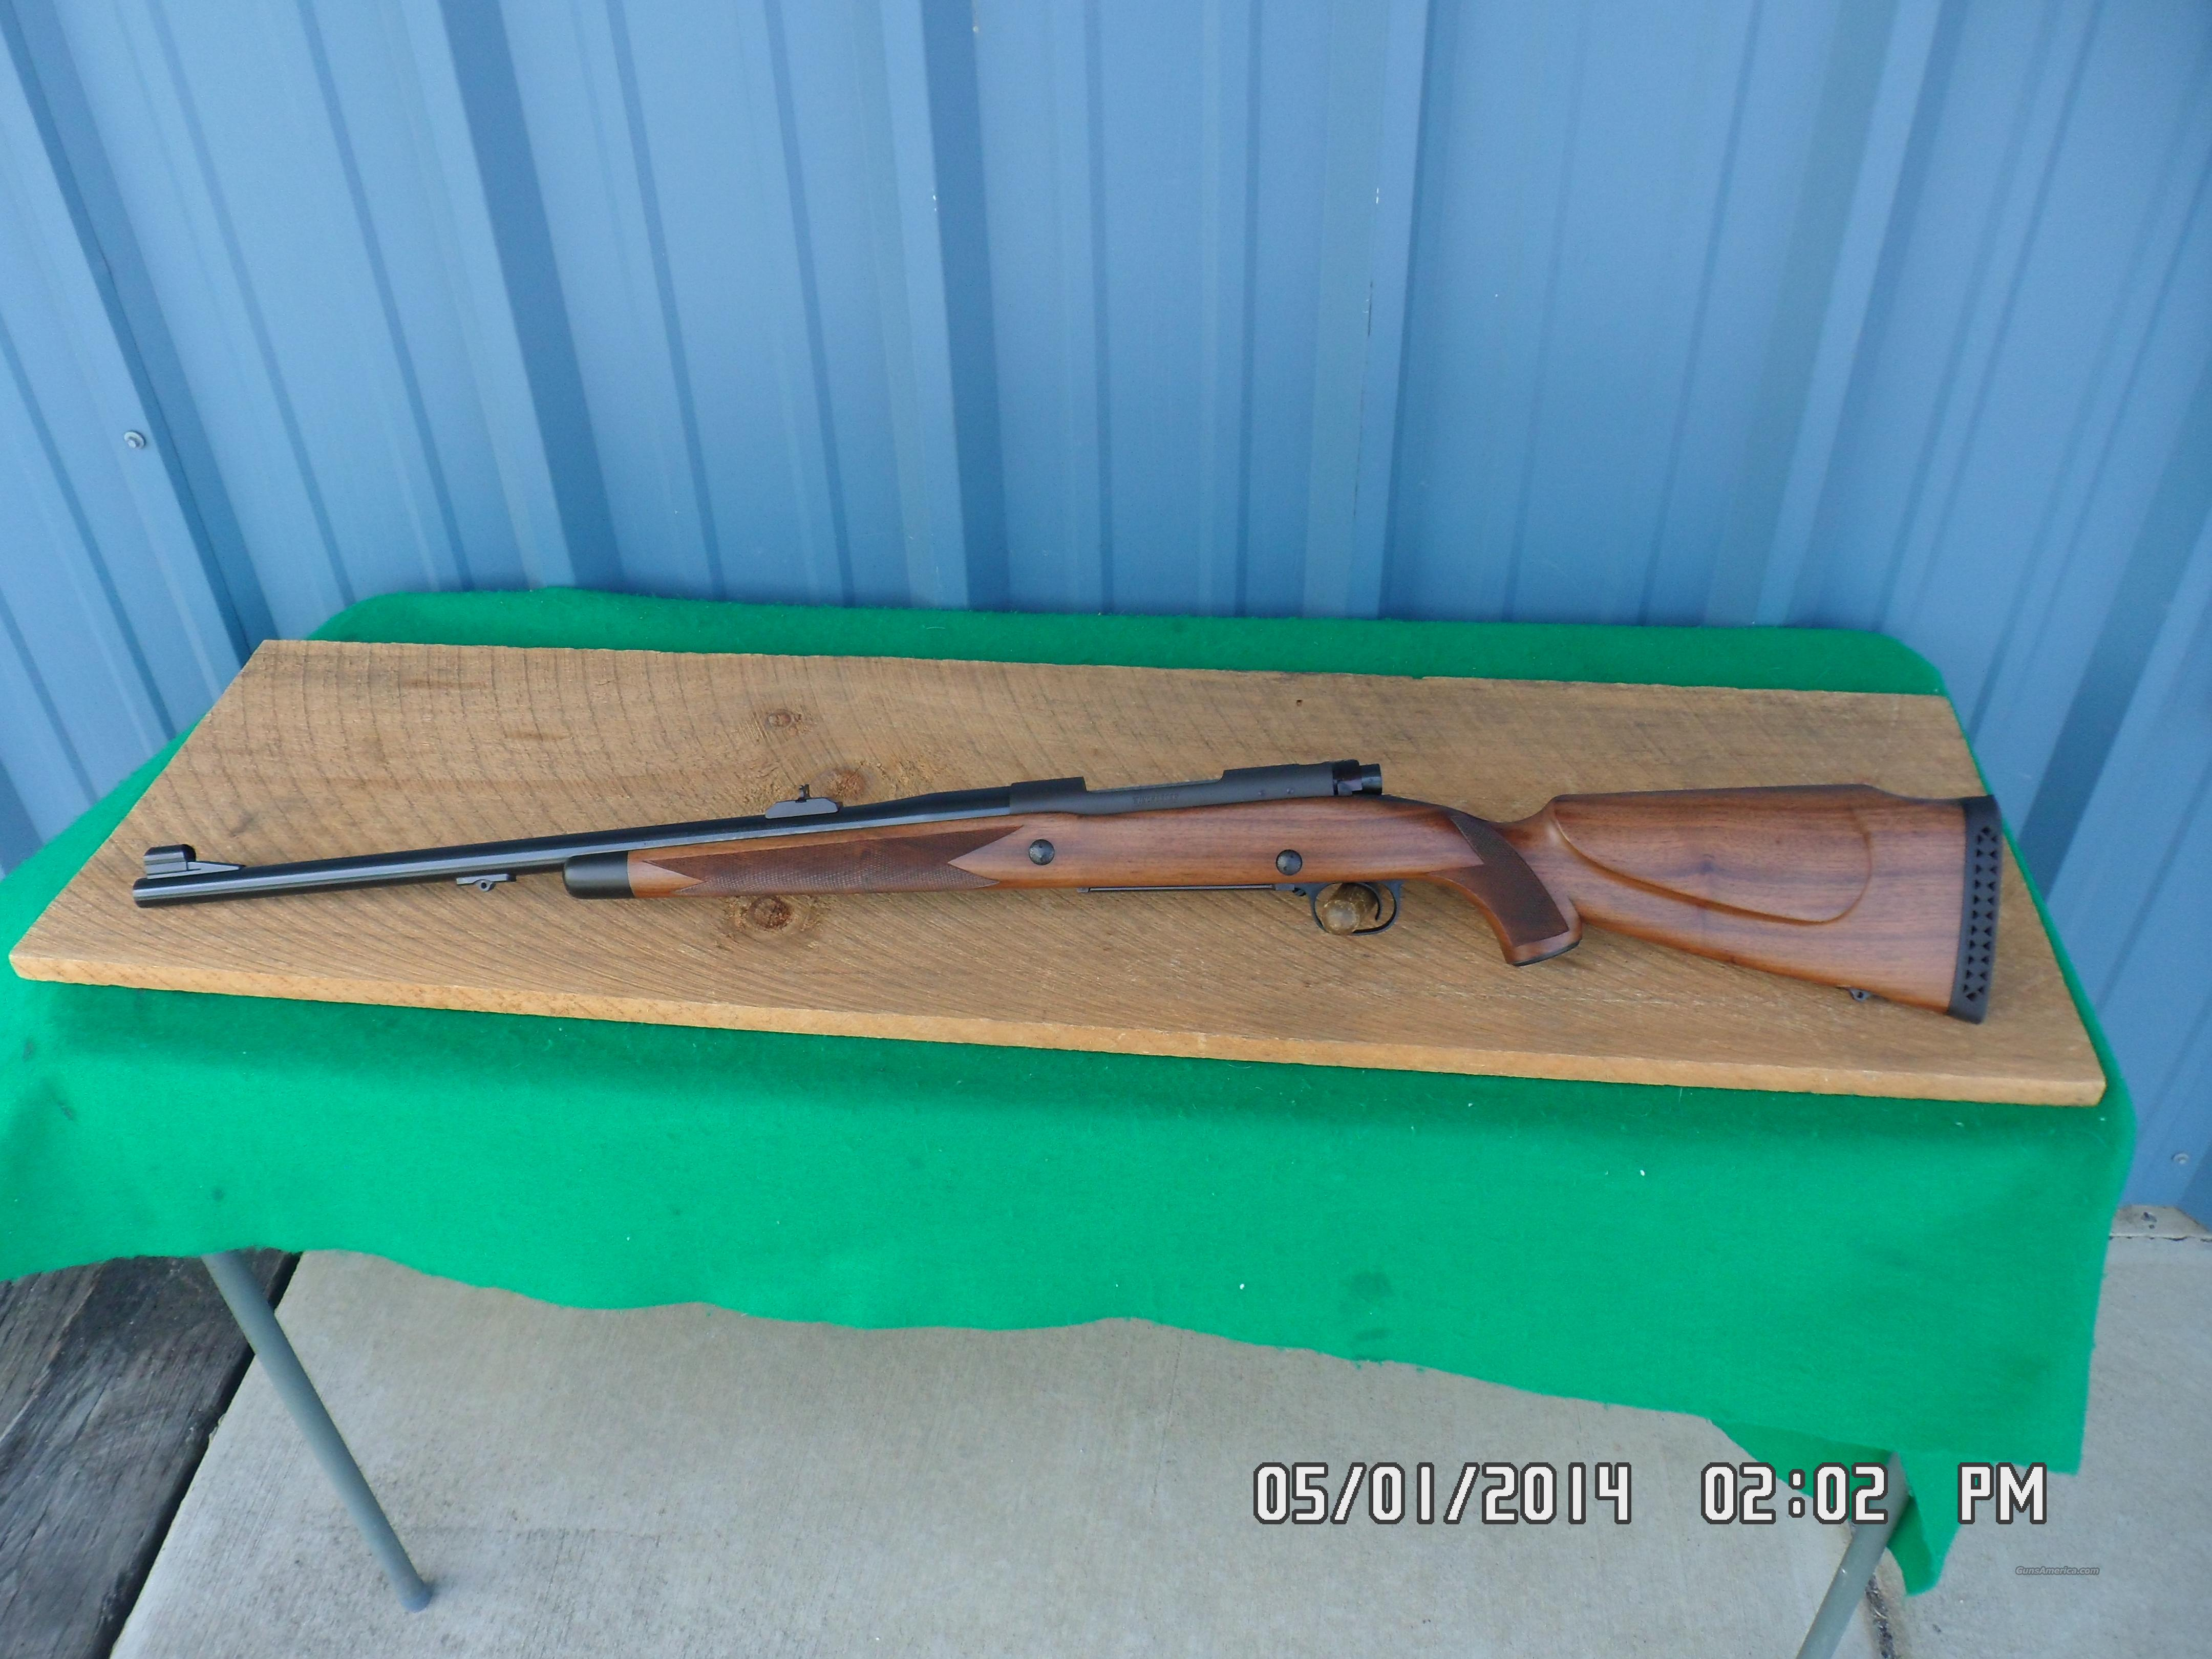 WINCHESTER MODEL 70 POST-64  458 WIN.MAG SUPER GRADE RIFLE,1974 MADE IN 99% ORIGINAL CONDITION.  Guns > Rifles > Winchester Rifles - Modern Bolt/Auto/Single > Model 70 > Post-64